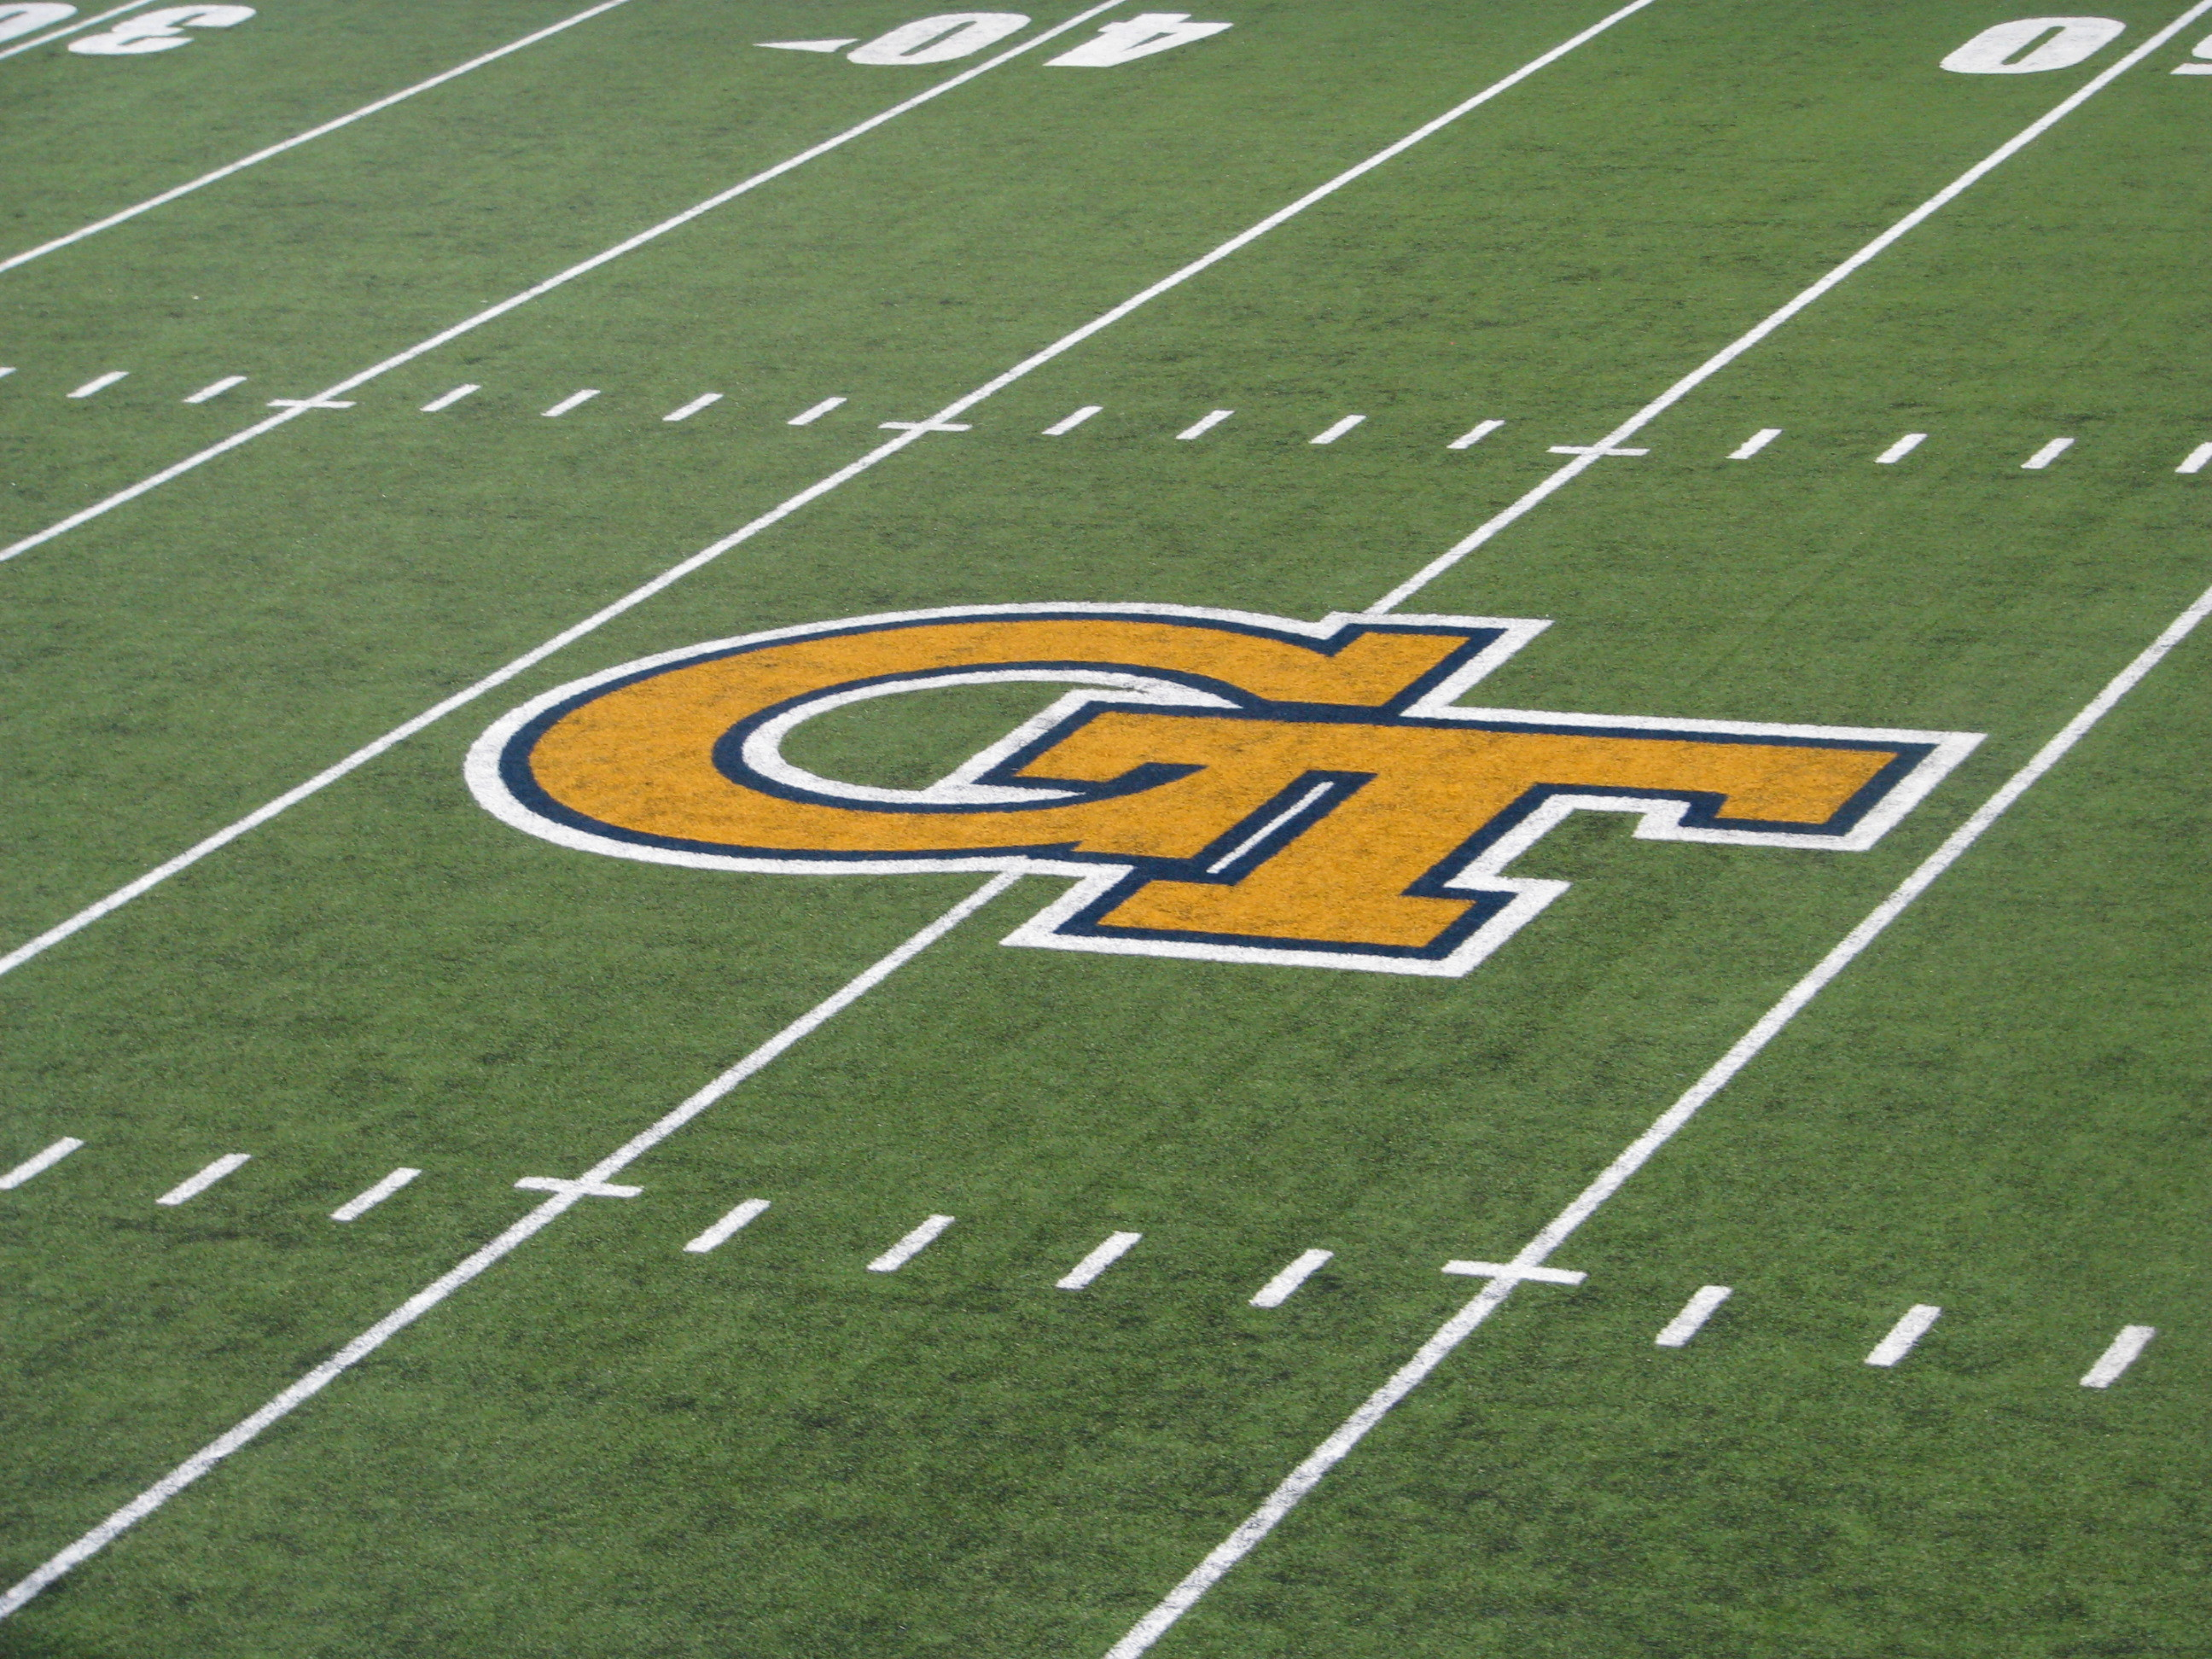 GT Logo on indoor field - Georgia Tech Football Practice - 8/24/11